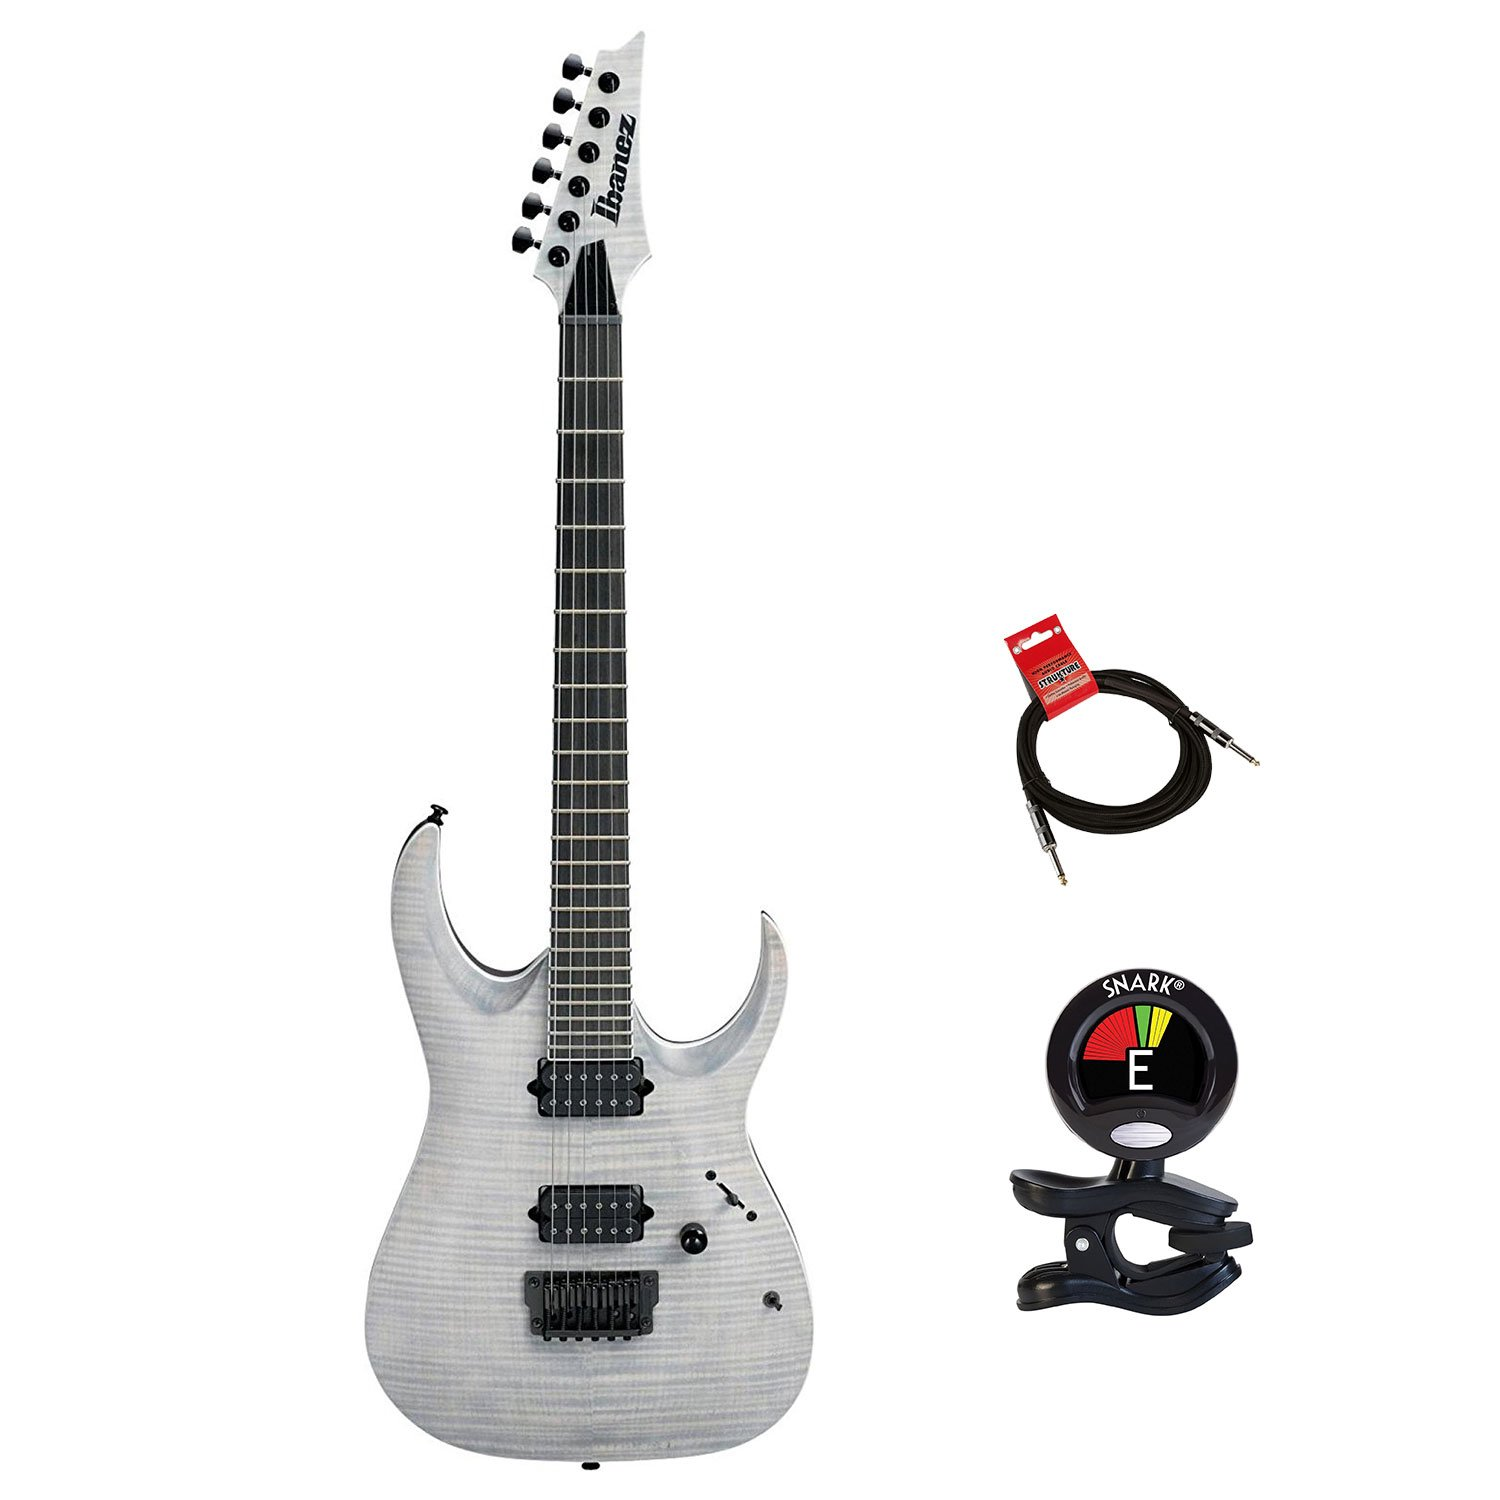 Cheap Ibanez RGAIX6FMWFF RGA Iron Label 6 String Electric Guitar Package in White Frost Flat With Guitas Clip On Tuner and Instrument Cable - Electric Guitars Package Black Friday & Cyber Monday 2019